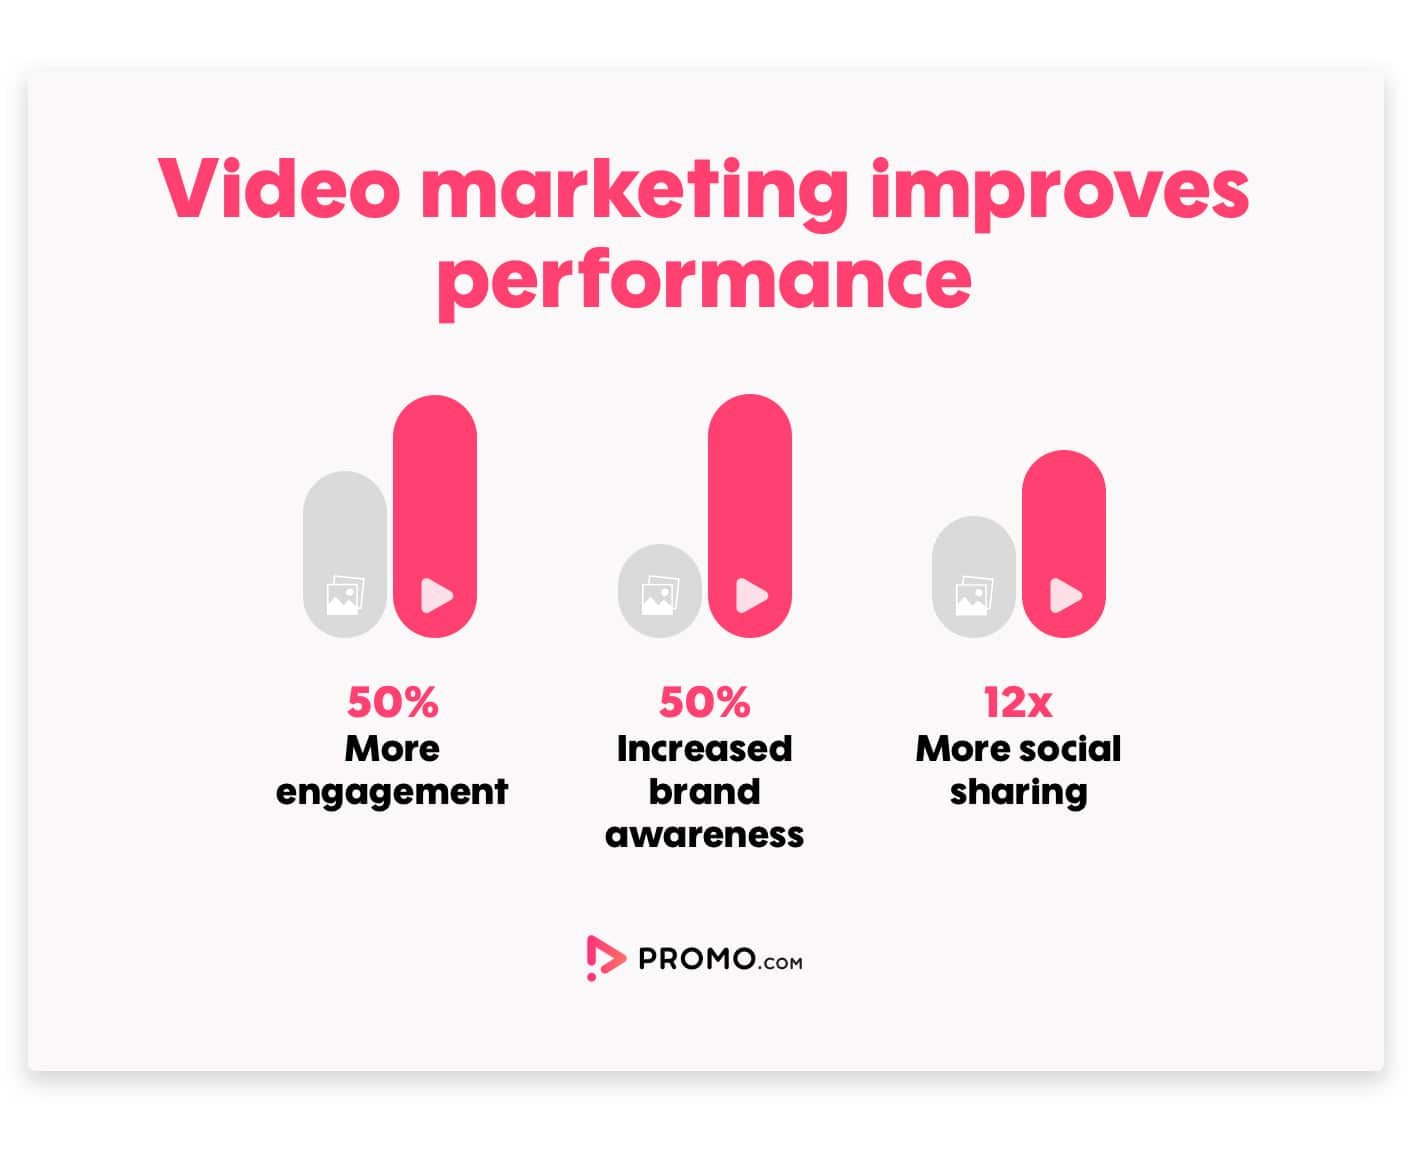 video marketing improves performance